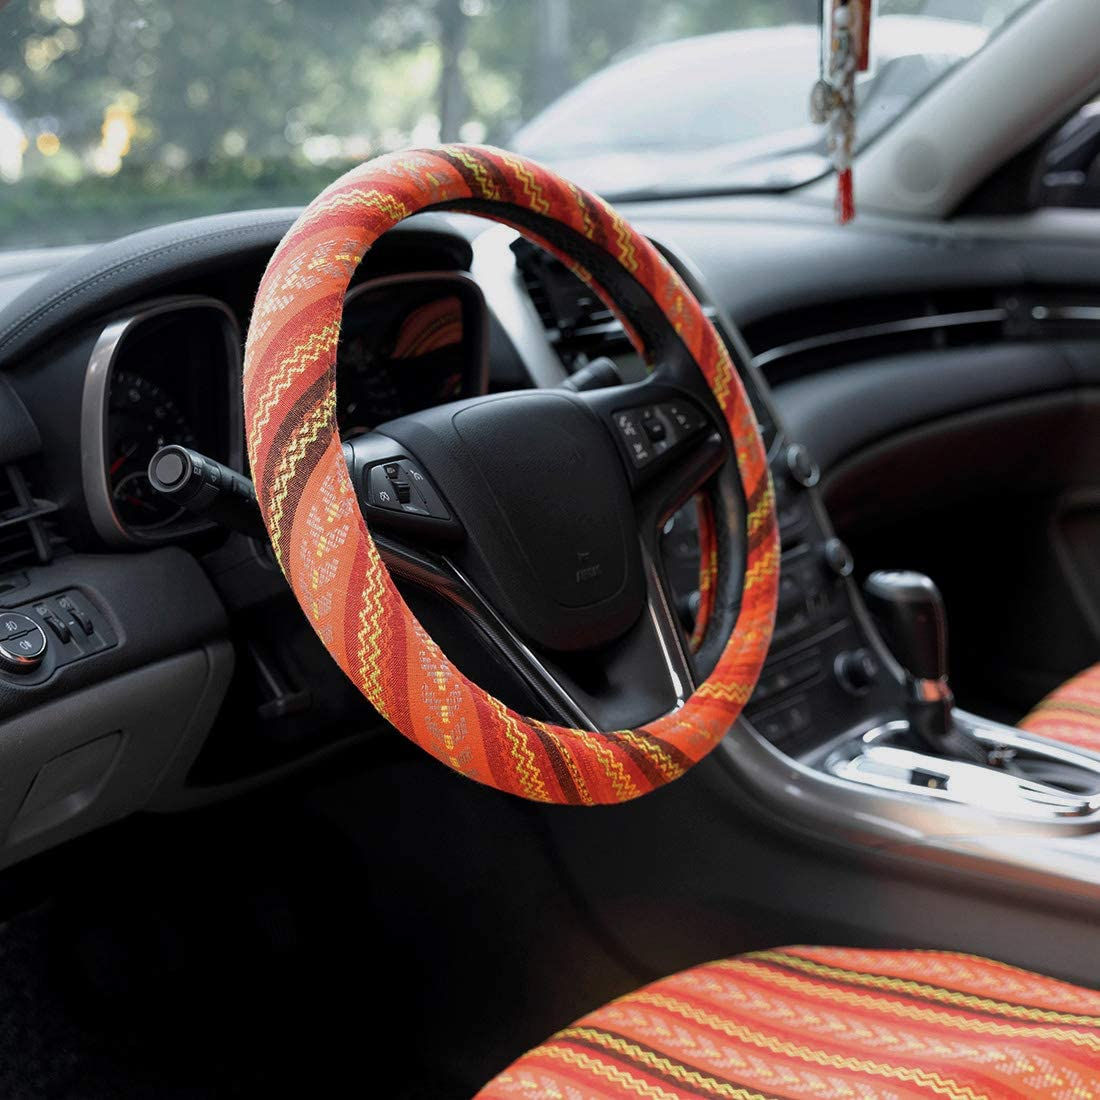 15 inch New Baja Blanket Car Steering Wheel Cover Universal Fit Most Cars Automotive Blue Ethnic Style Coarse Flax Cloth